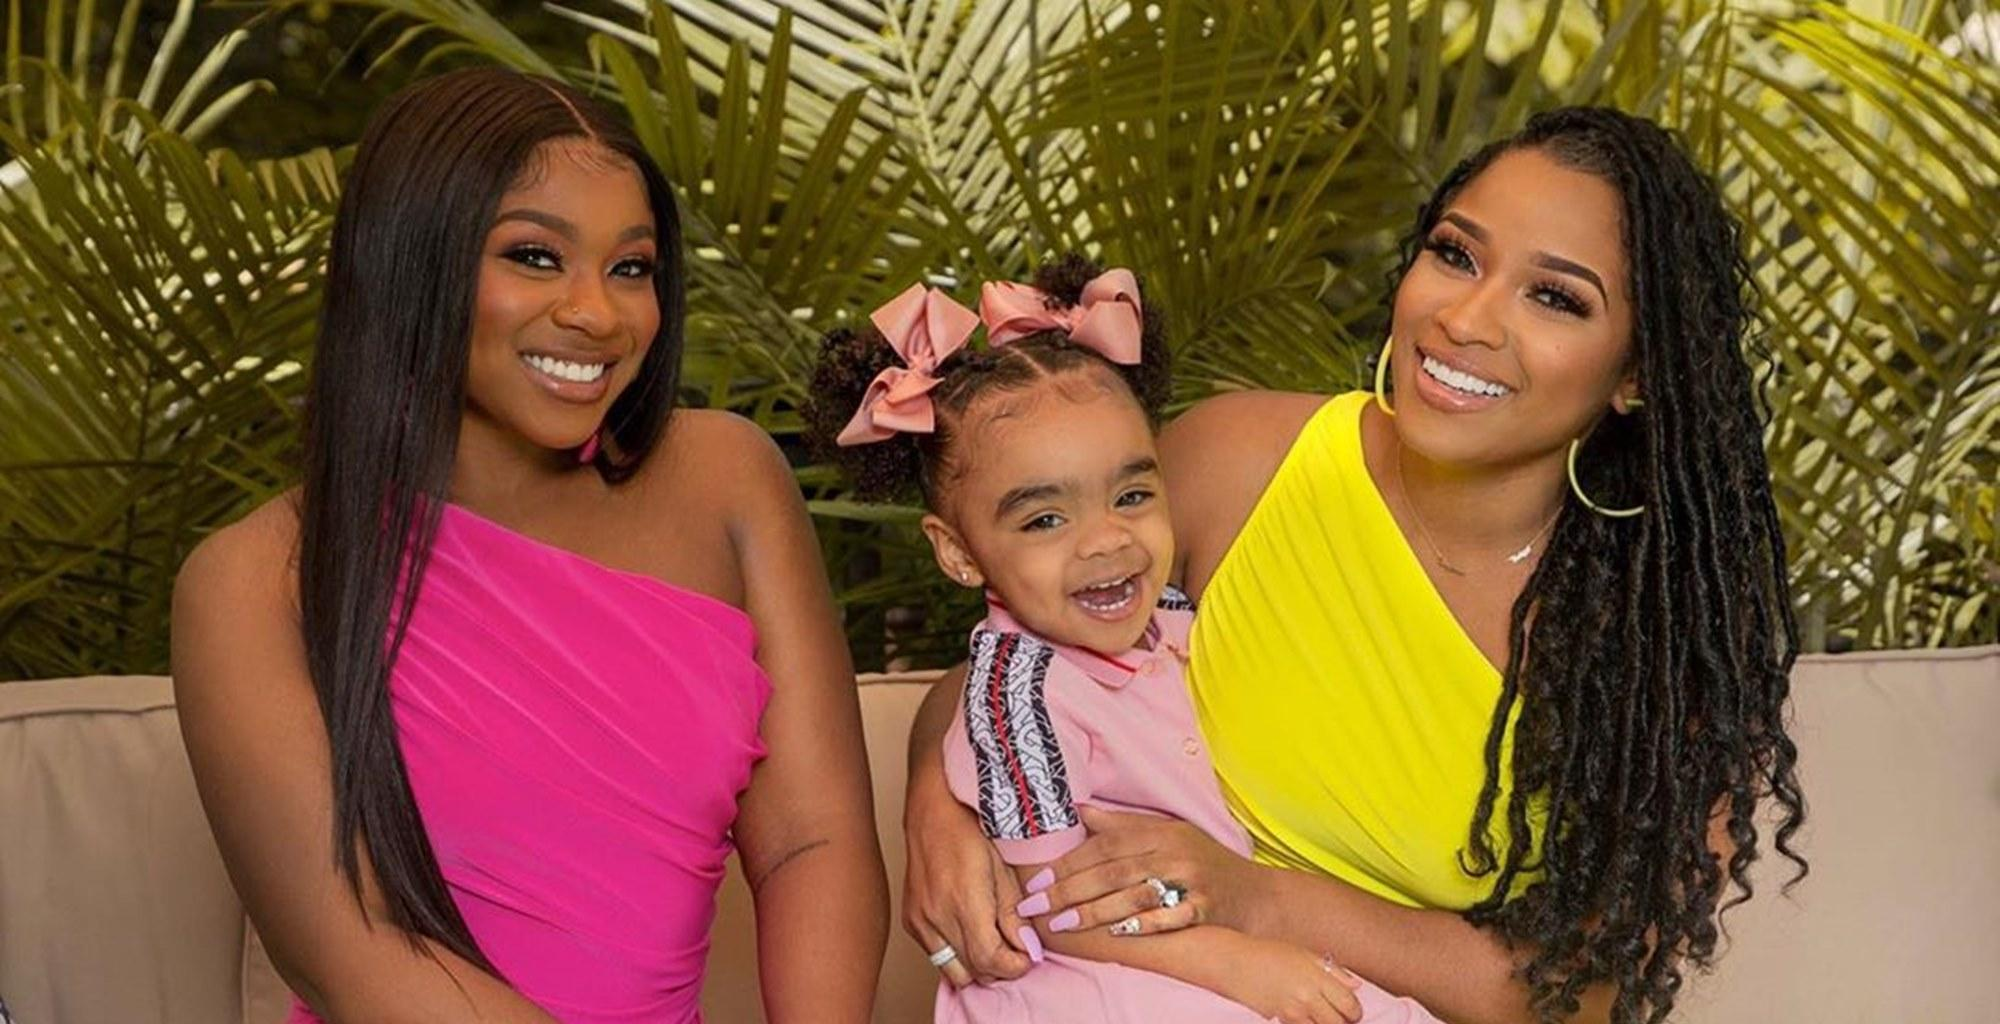 Lil Wayne's Daughter, Reginae Carter, Explains Why She Is Not Making Another Man Famous After The YFN Lucci Fiasco